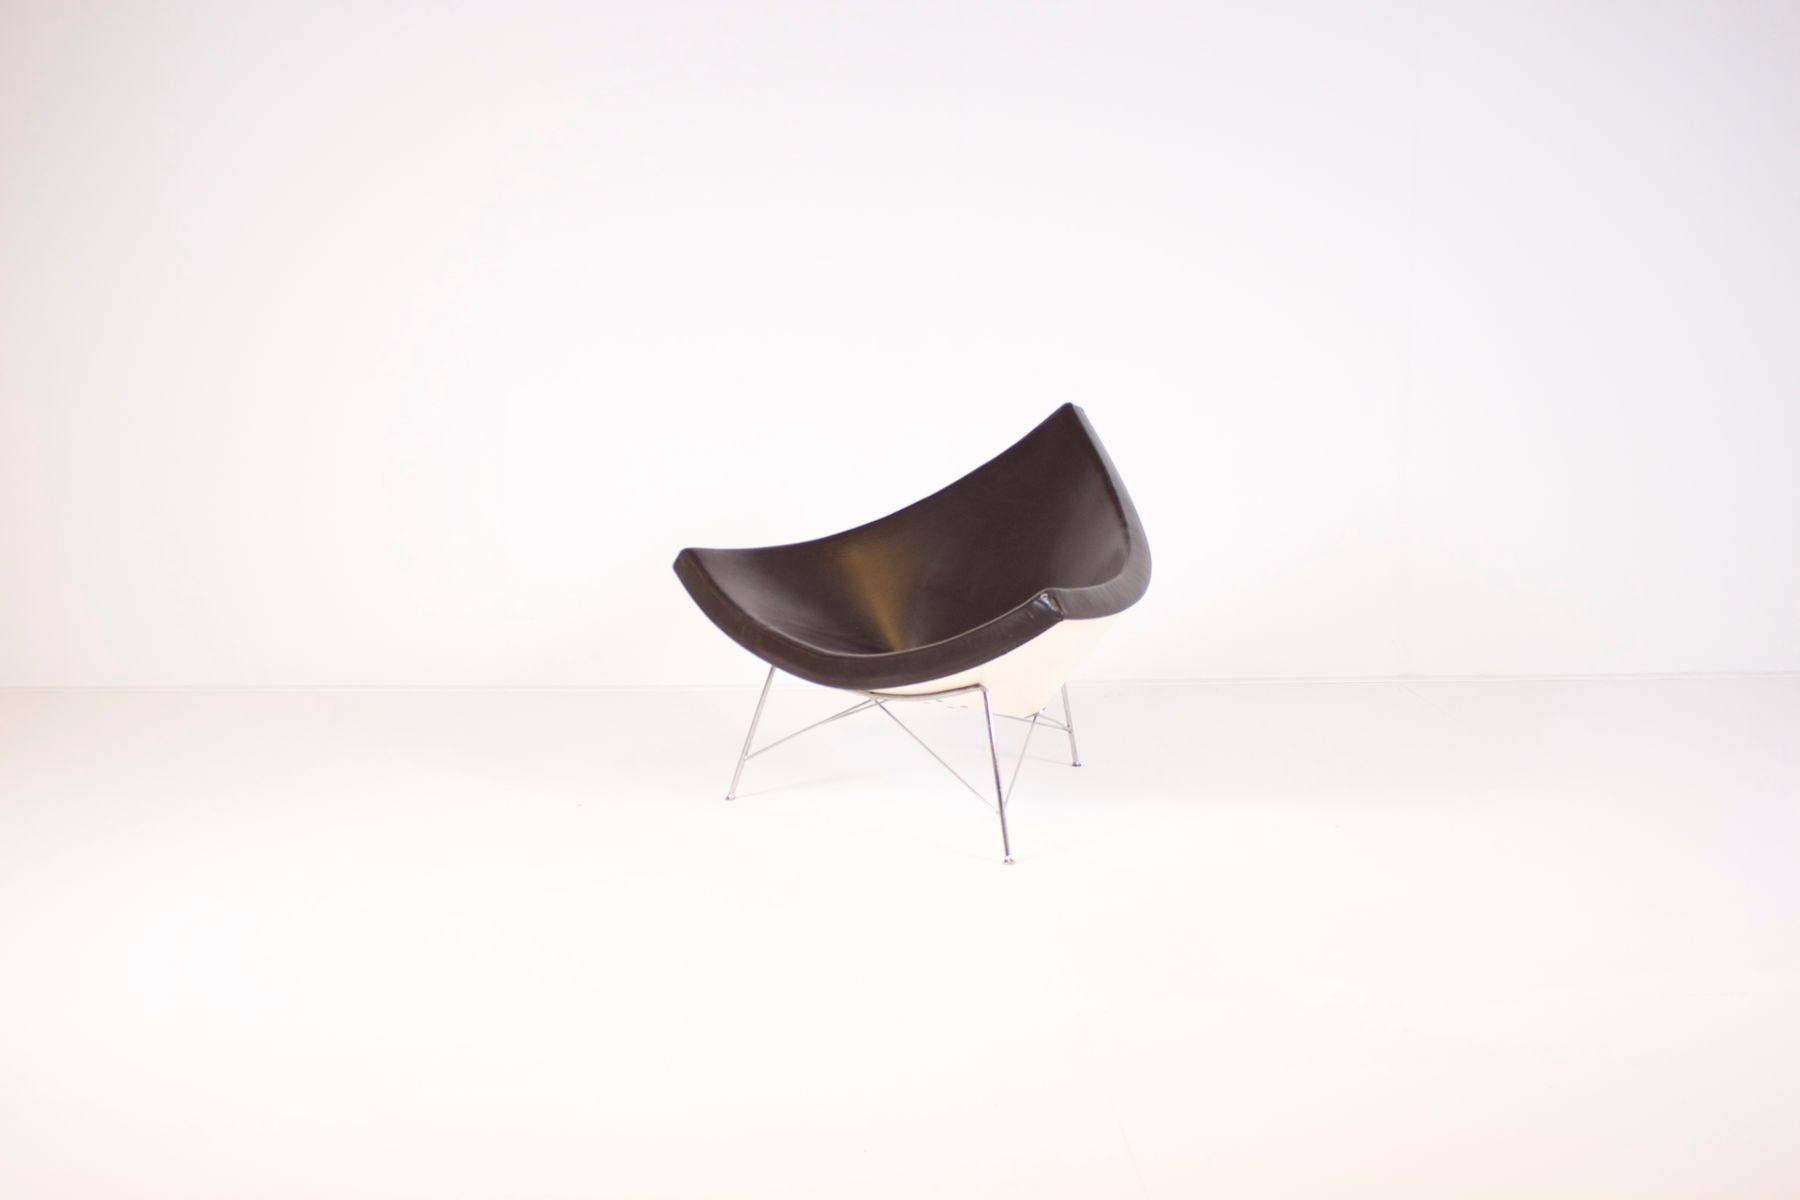 Brown Leather Coconut Chair by George Nelson for Vitra for sale at